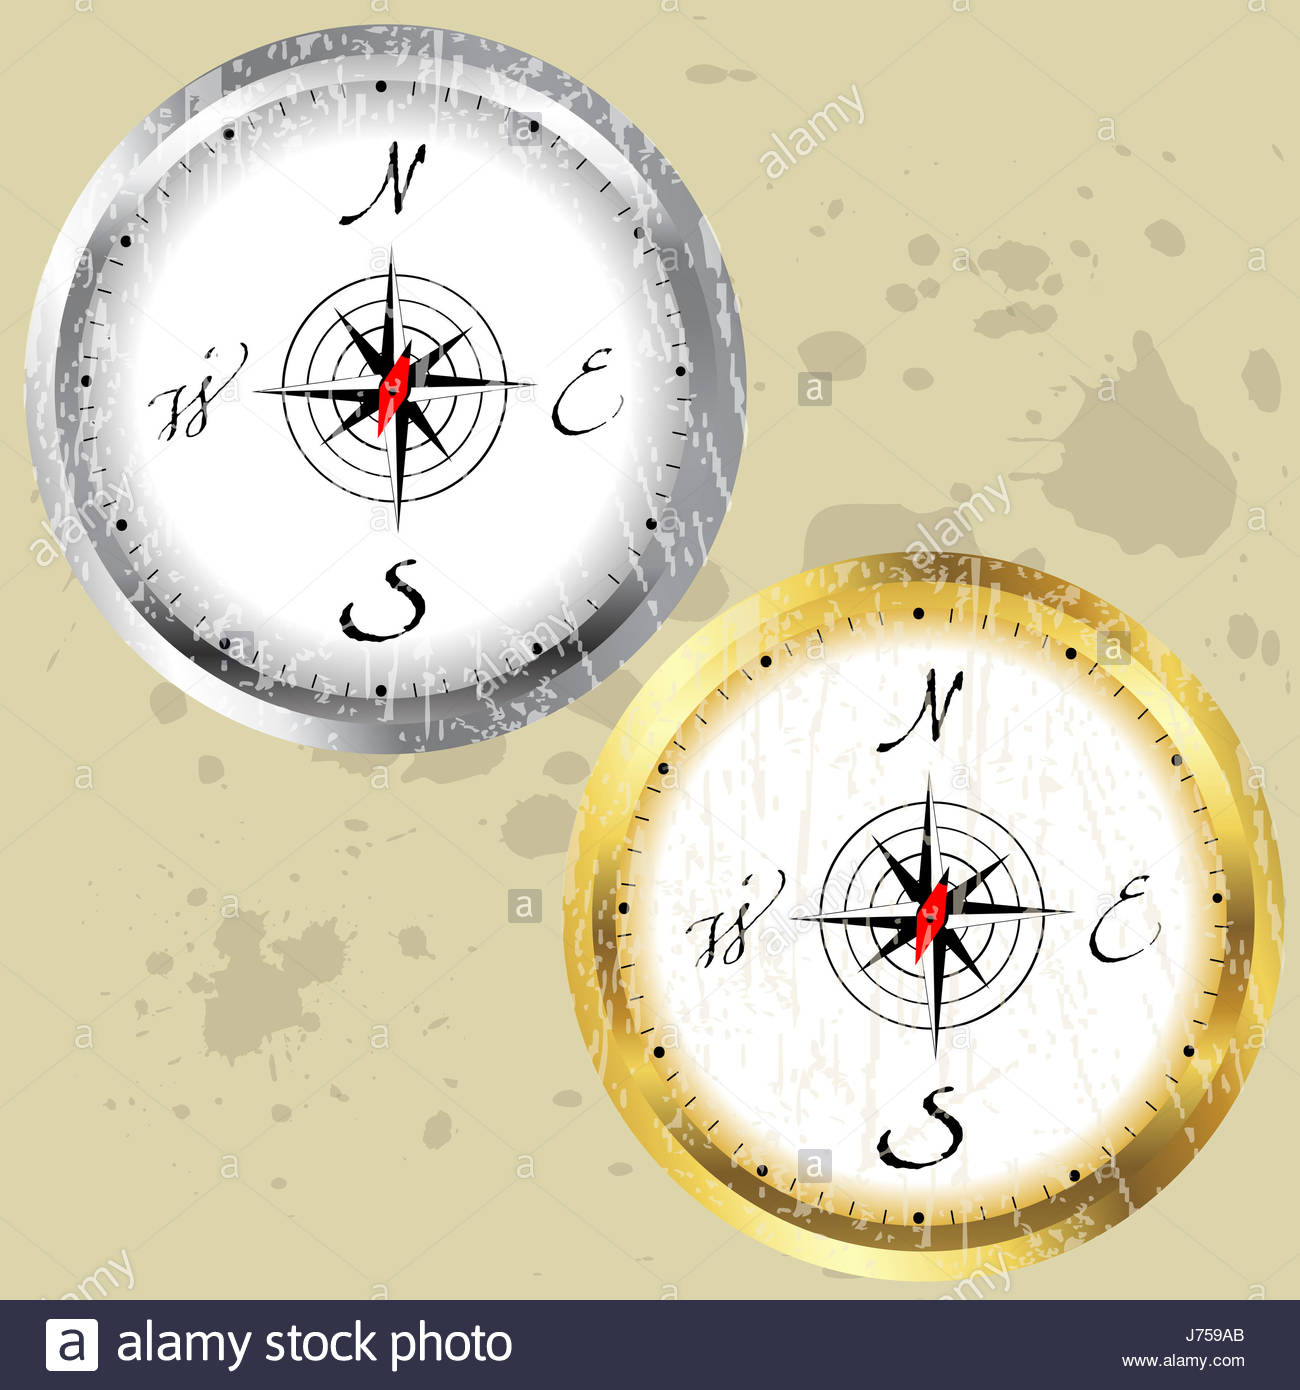 direction old arrow cartography compass circle graphic navigation illustration - Stock Image